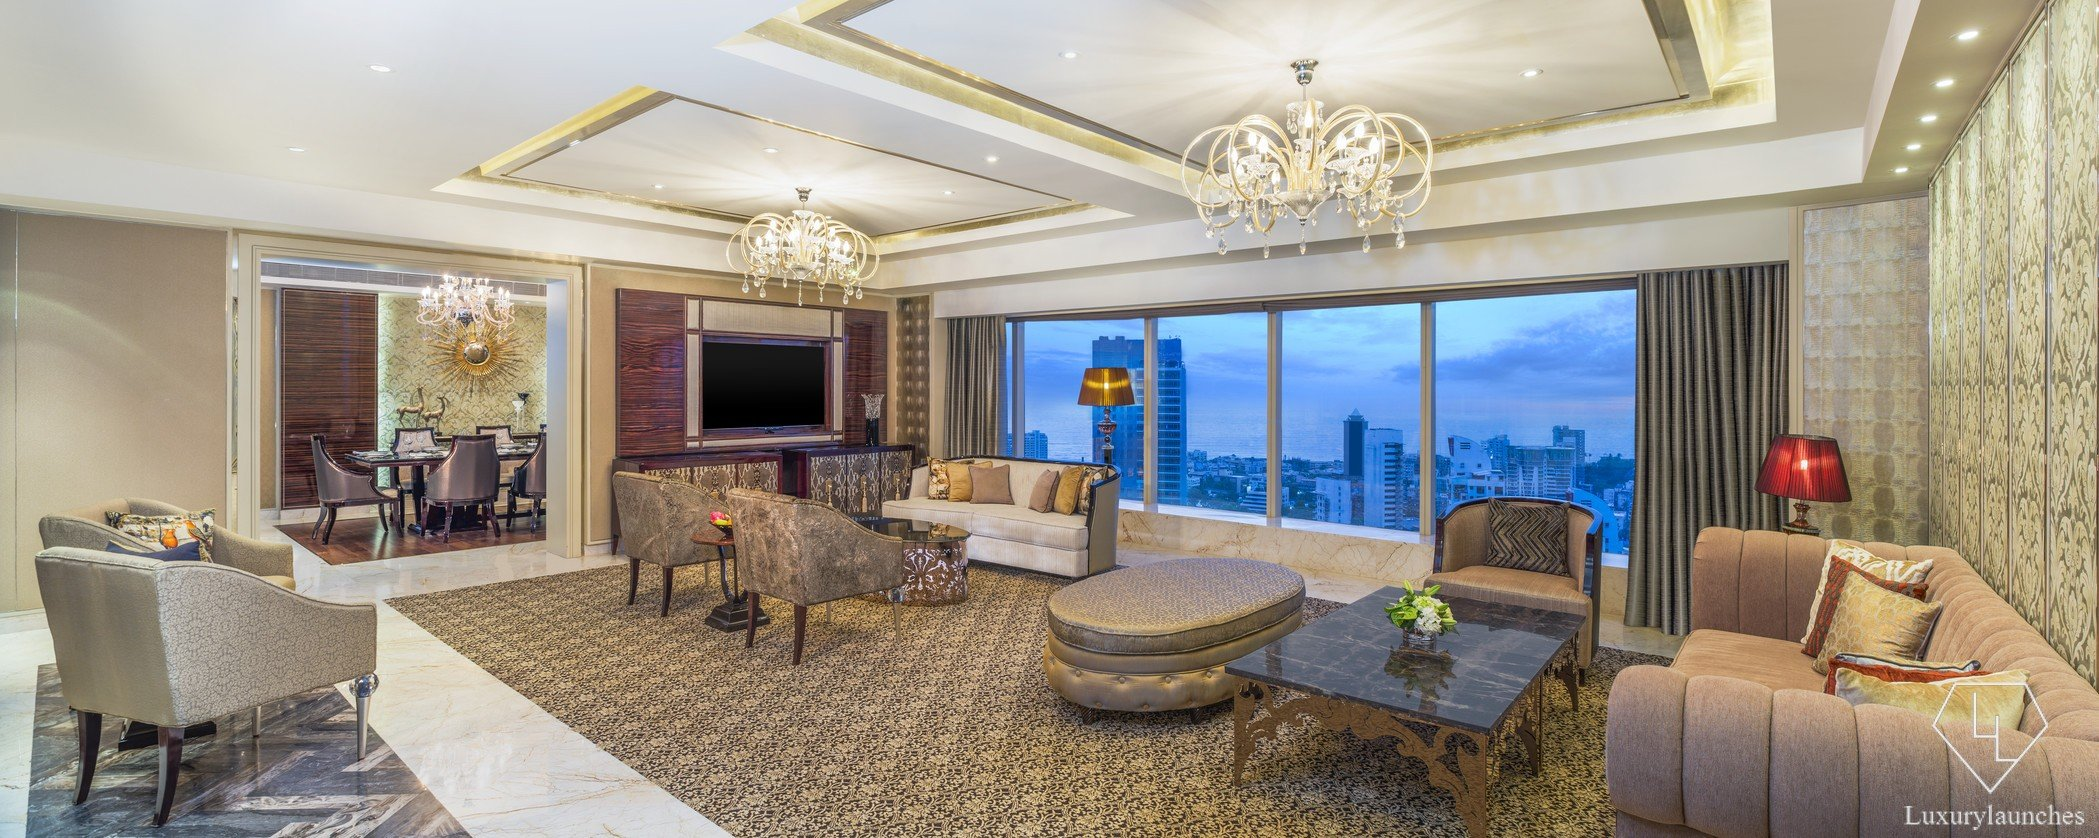 Suite Of The Week Presidential Suite At The St Regis